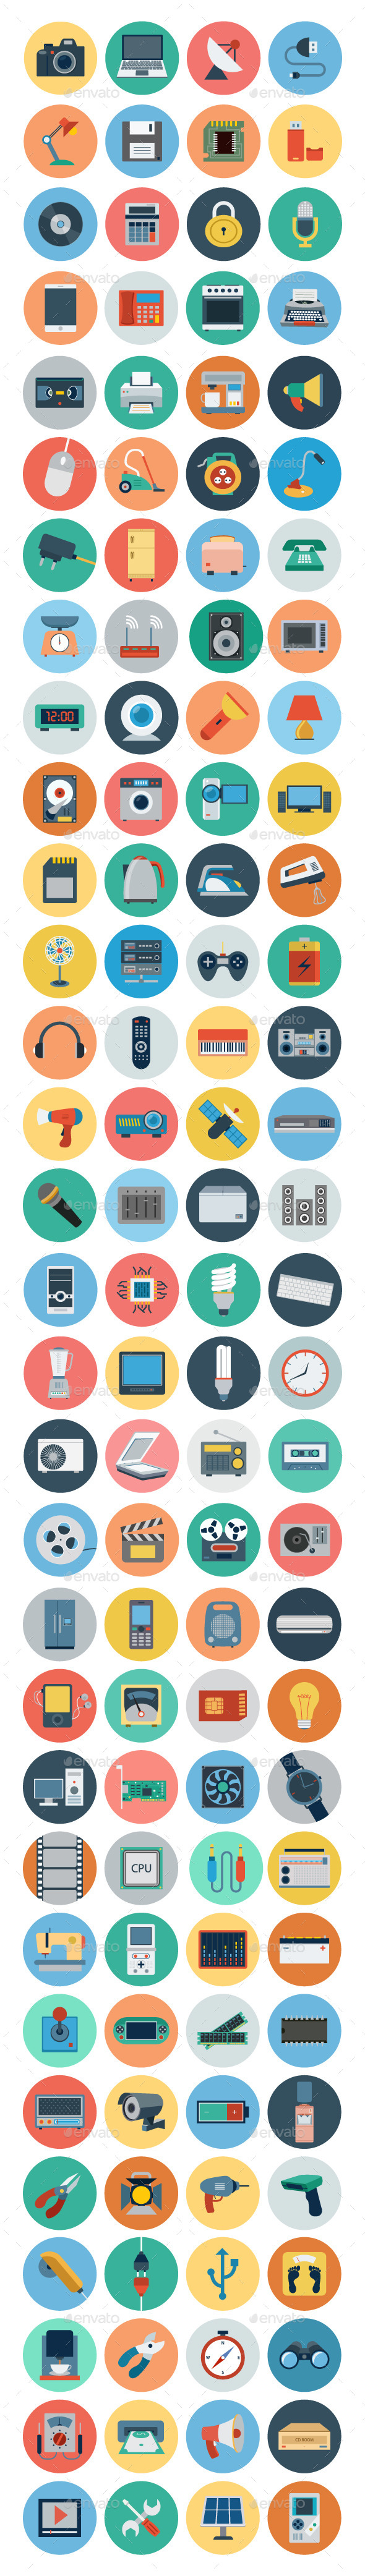 120+ Electronics Flat Icons - Objects Icons